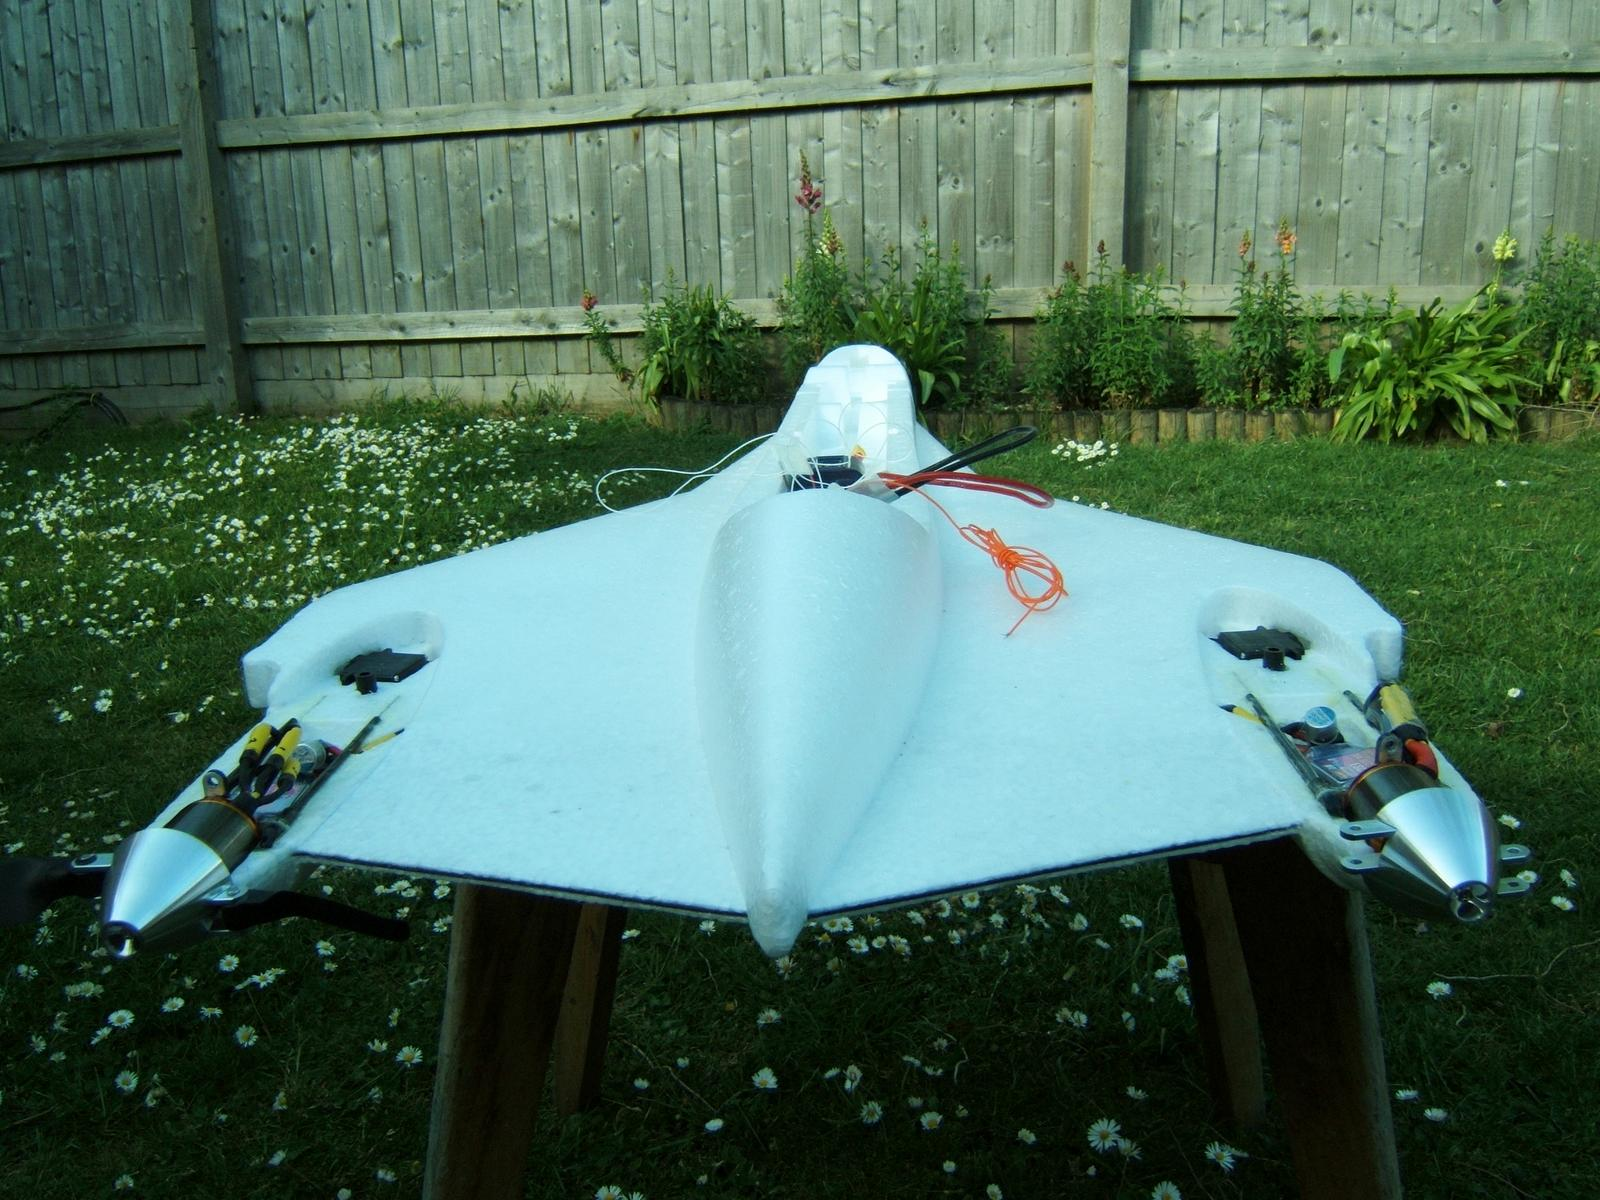 Name: DSCF0655.jpg